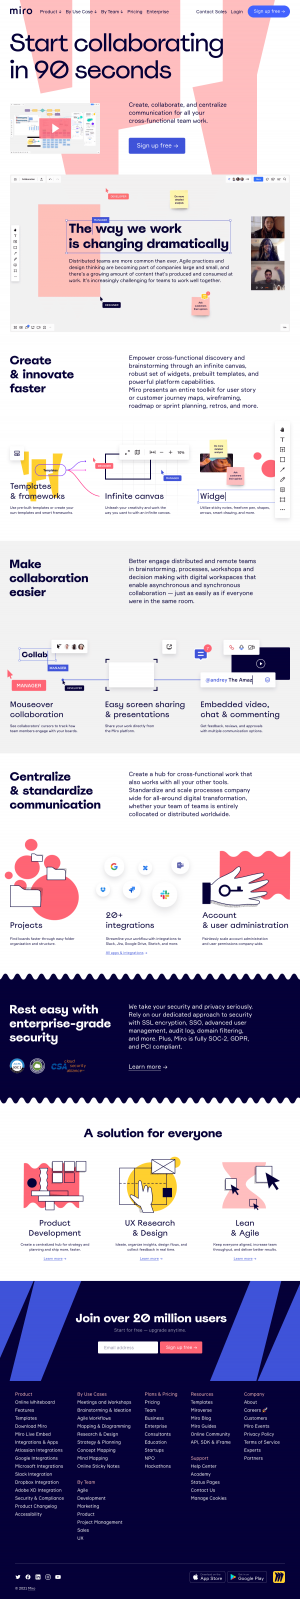 Miro – Features page 2